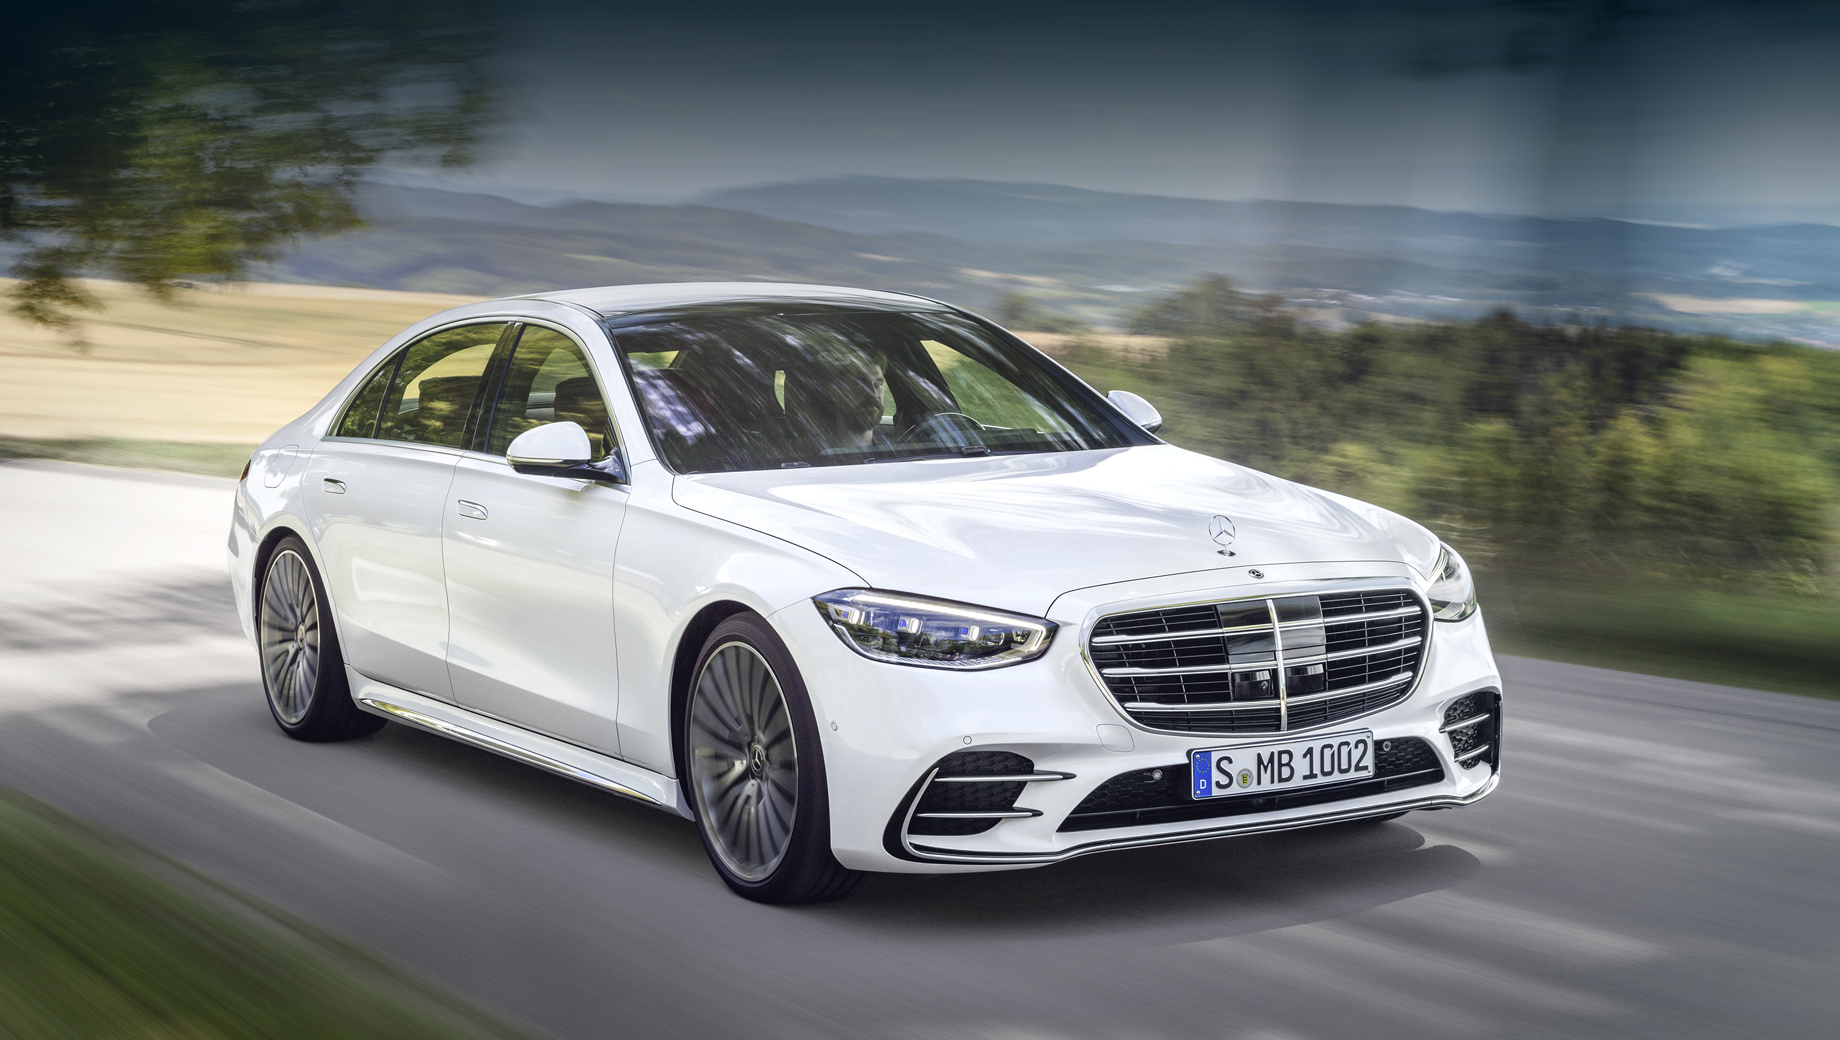 The German automotive giant has disclosed the recommended retail prices for its new W223 S-Class lineup.